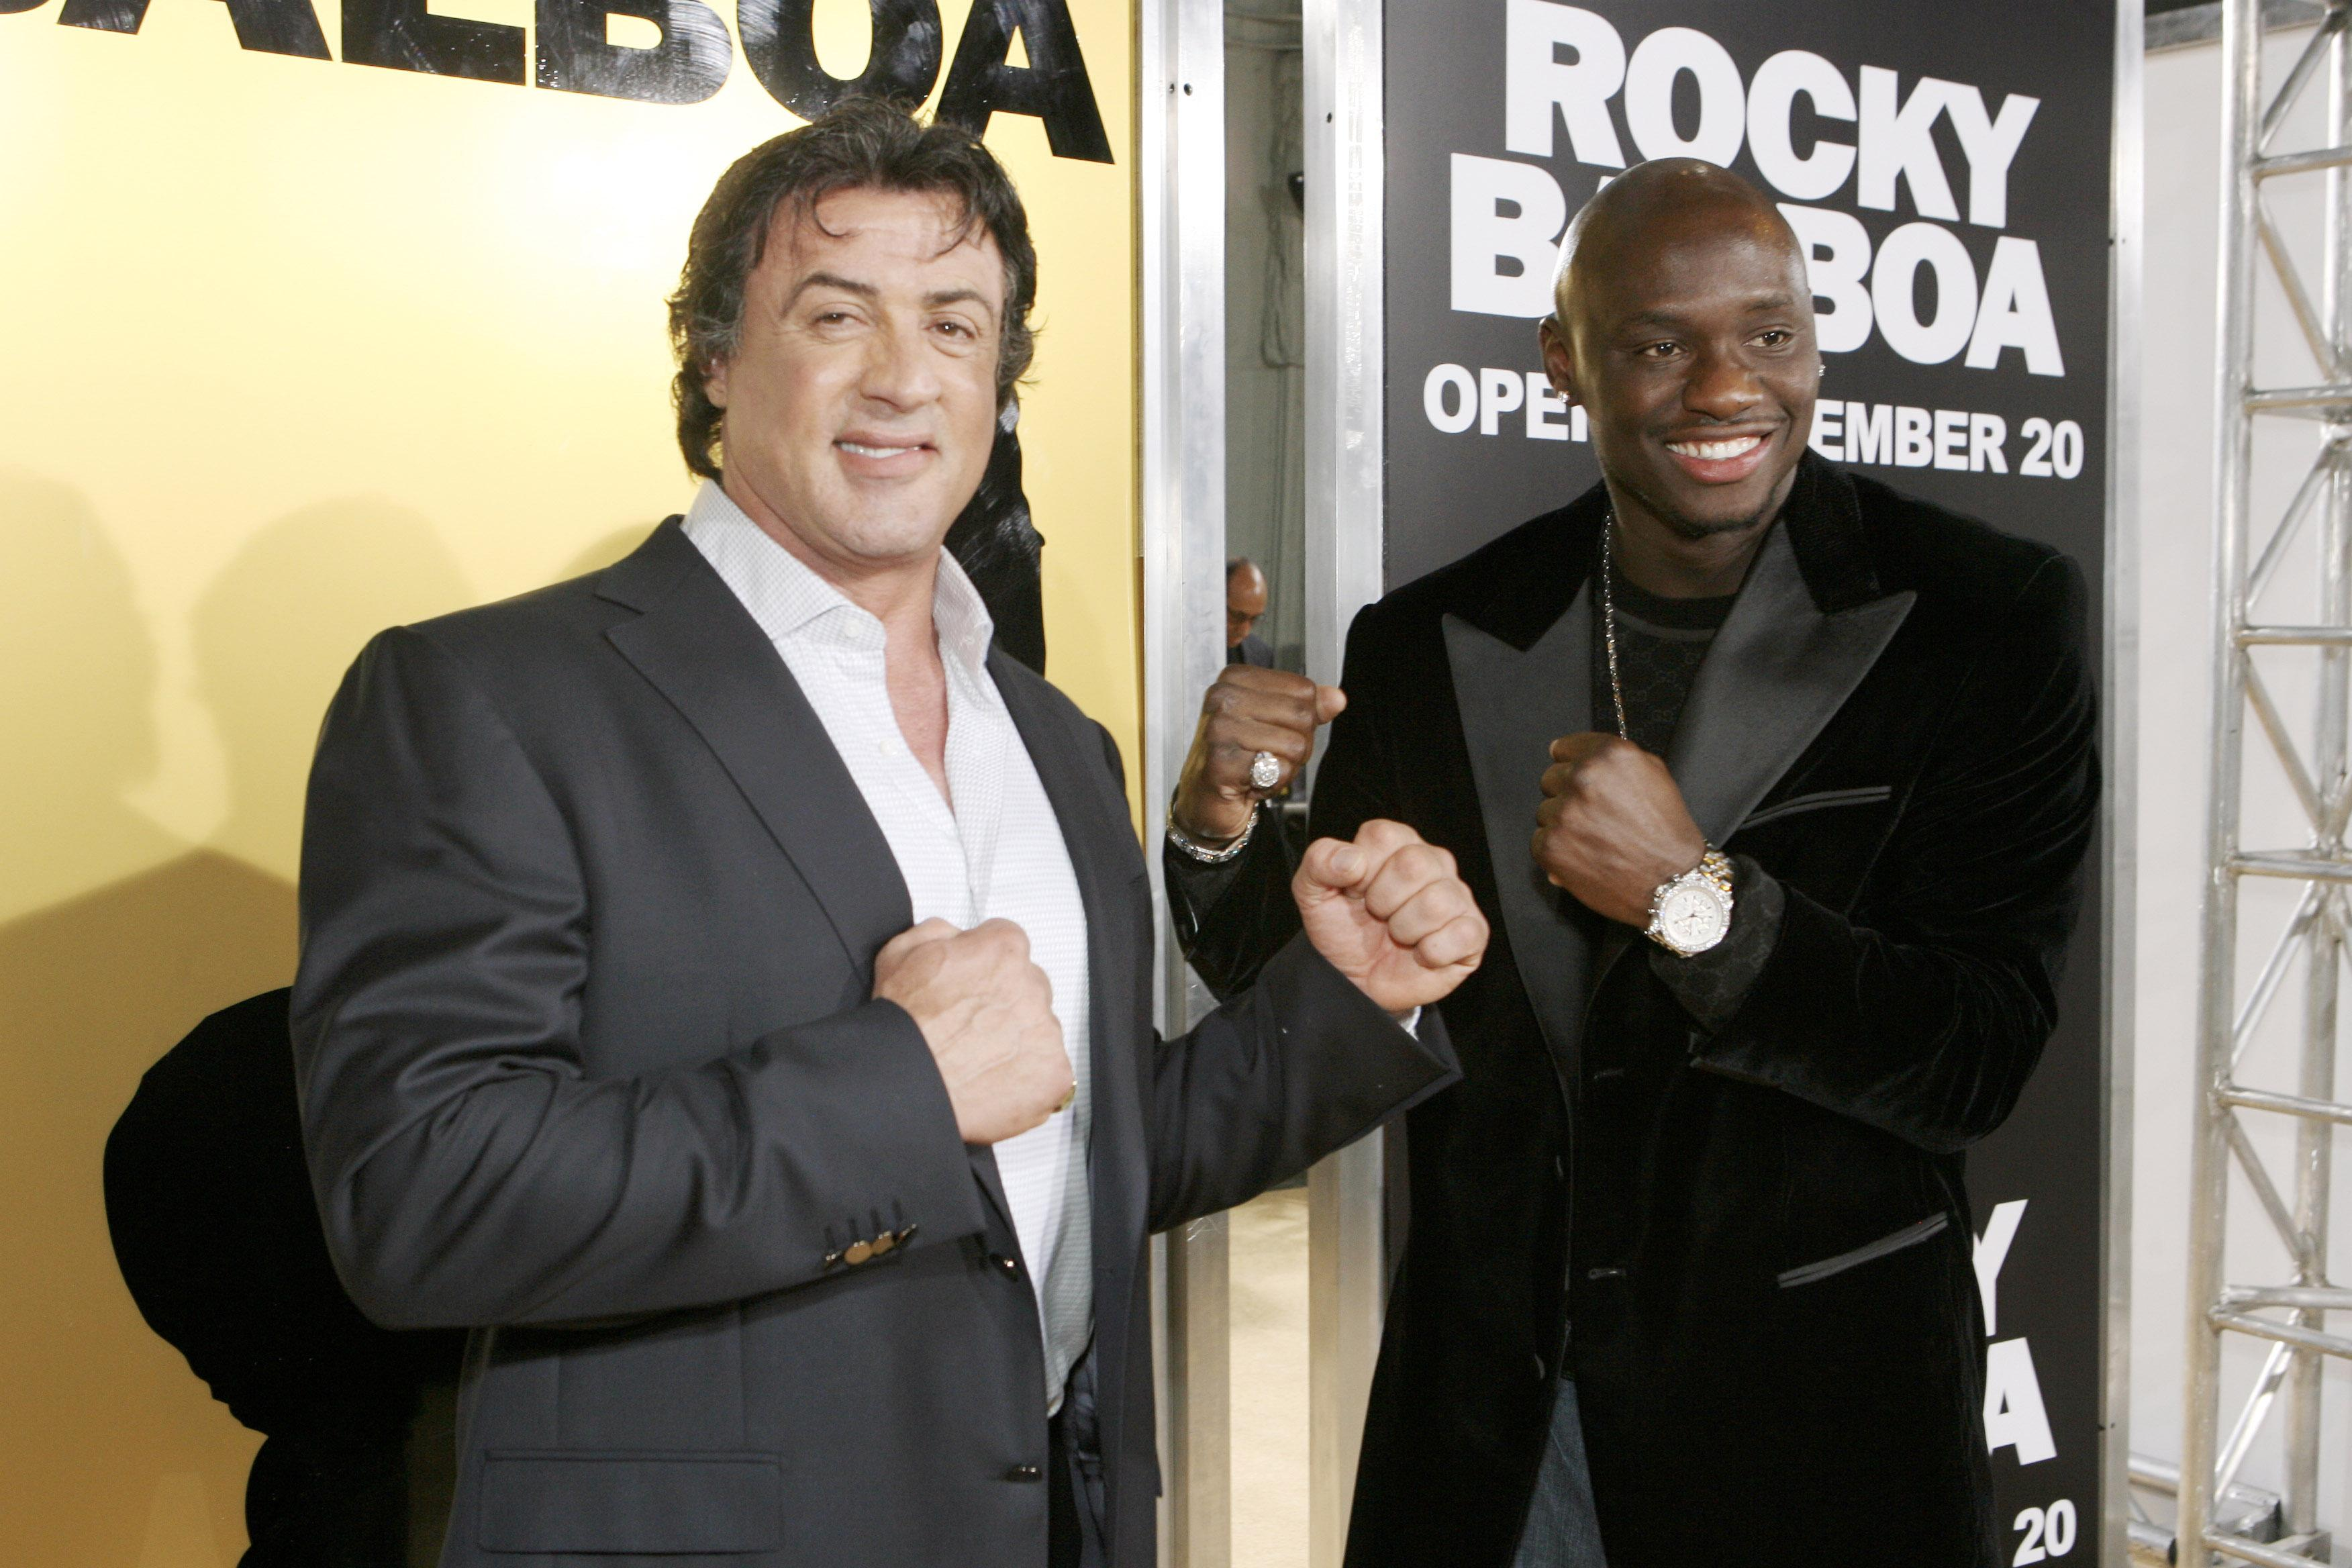 Sylvester Stallone and Antonio Tarver